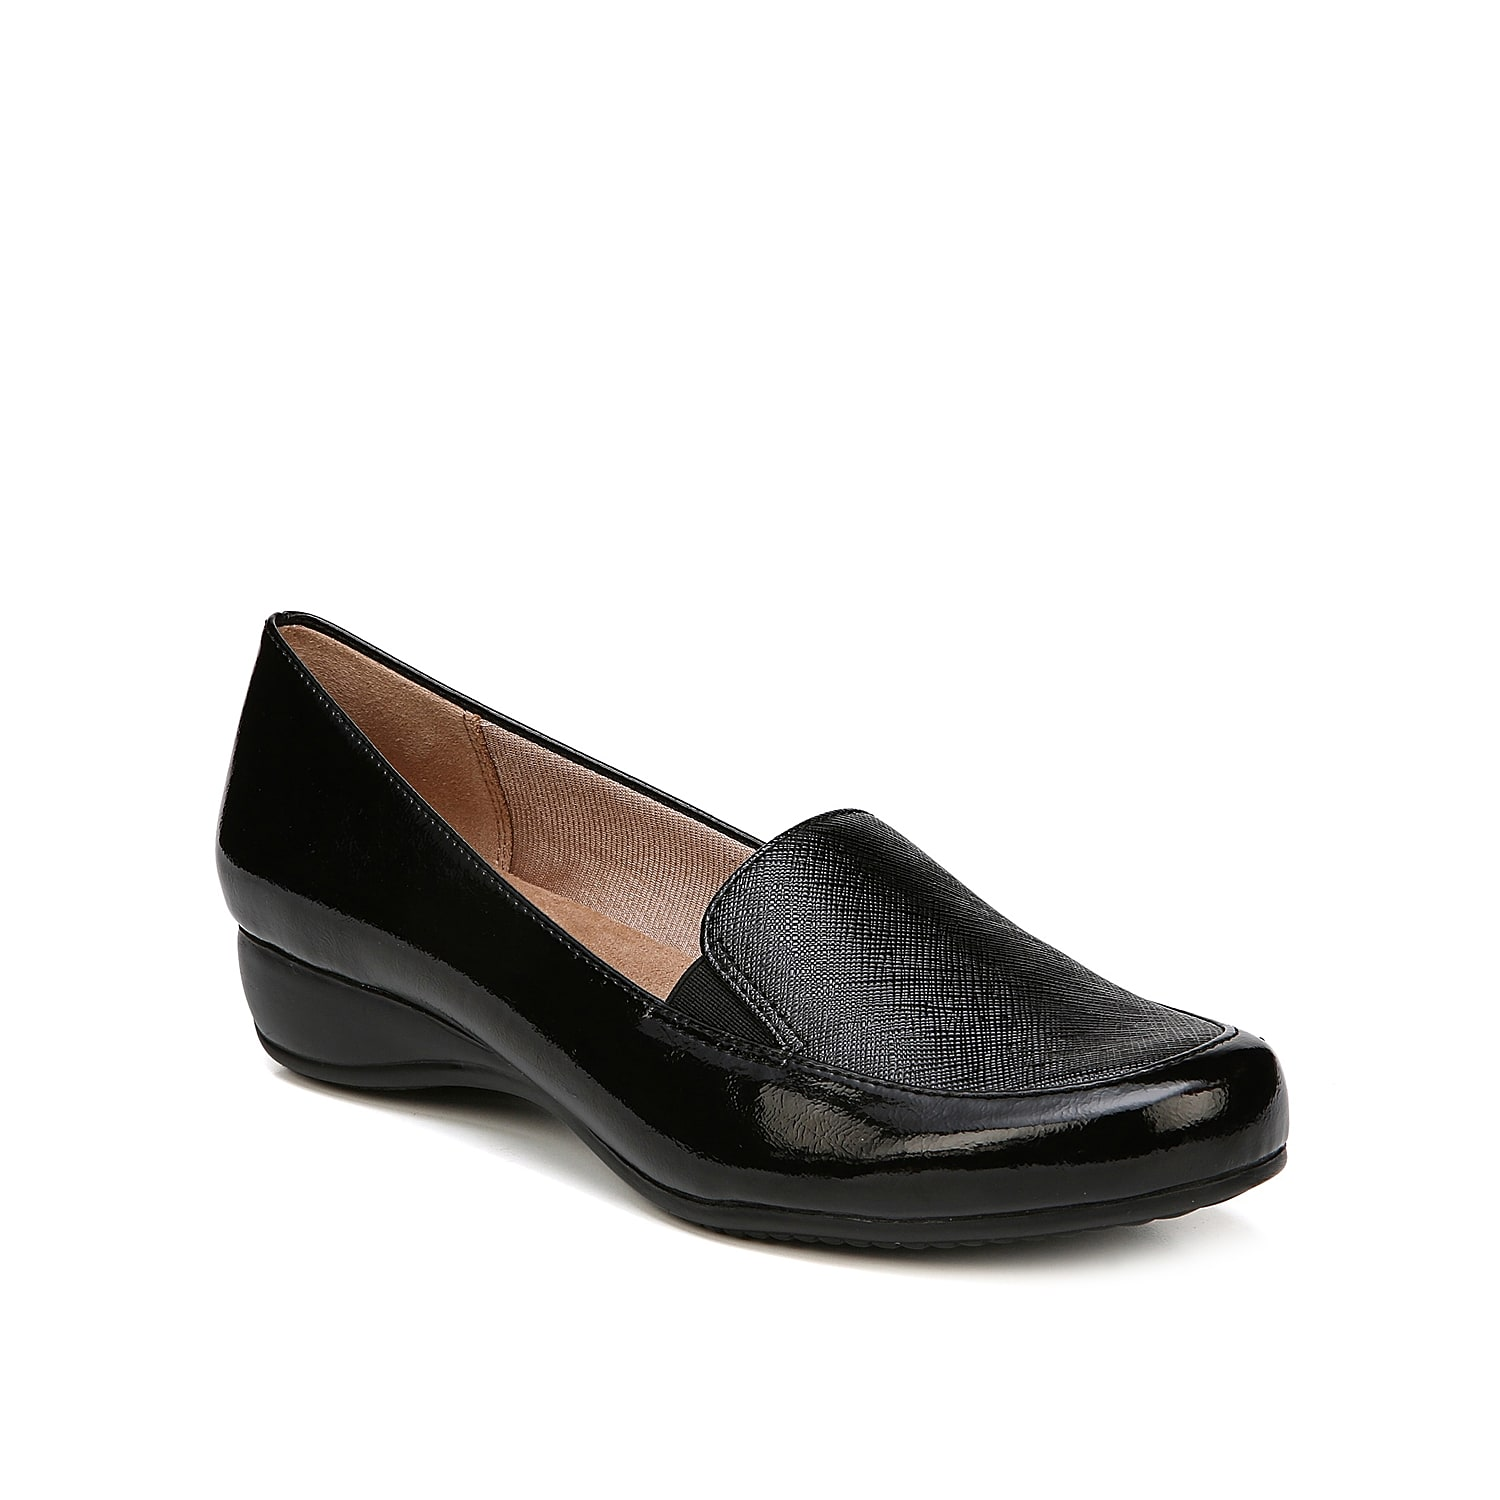 With a low demi wedge heel, the Dara loafer from LifeStride will offer the perfect amount of height to your tailored shoe collection. An extra plush Soft System® footbed adds a comfortable finishing touch to this sleek slip-on.